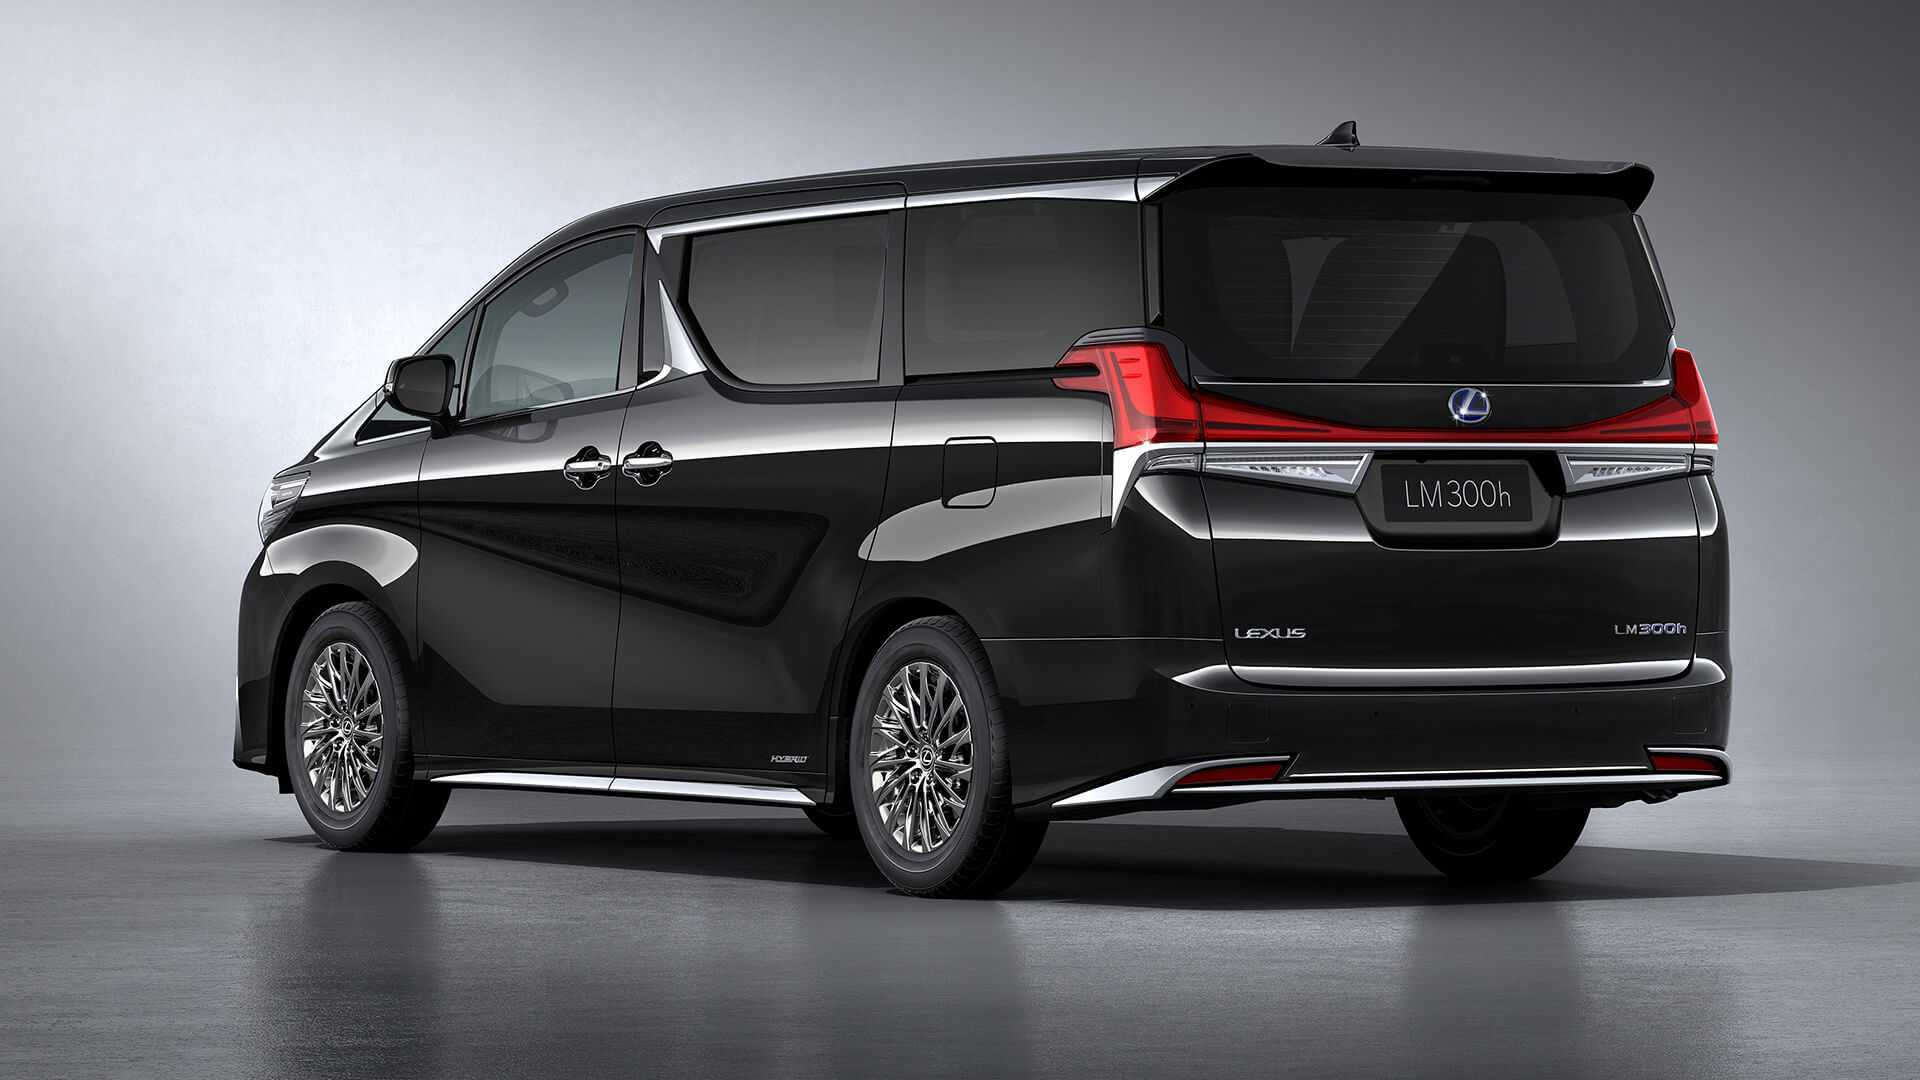 65 All New Lexus Van 2020 Price Specs